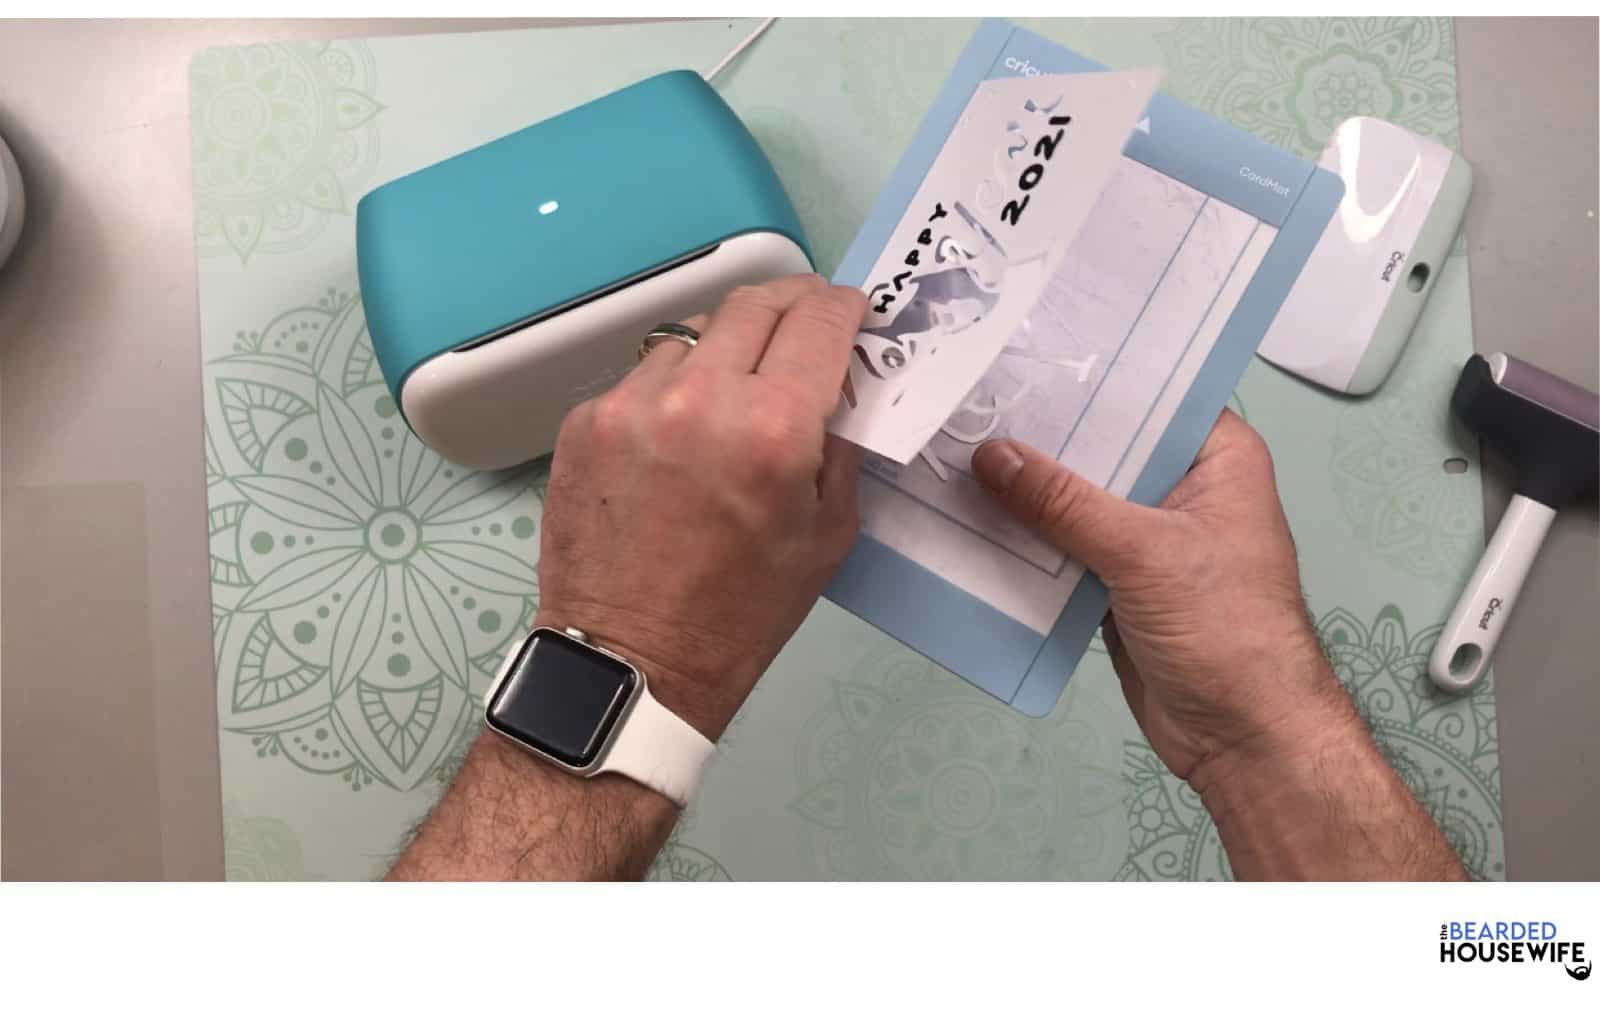 once complete, carefully peel the card away from the mat